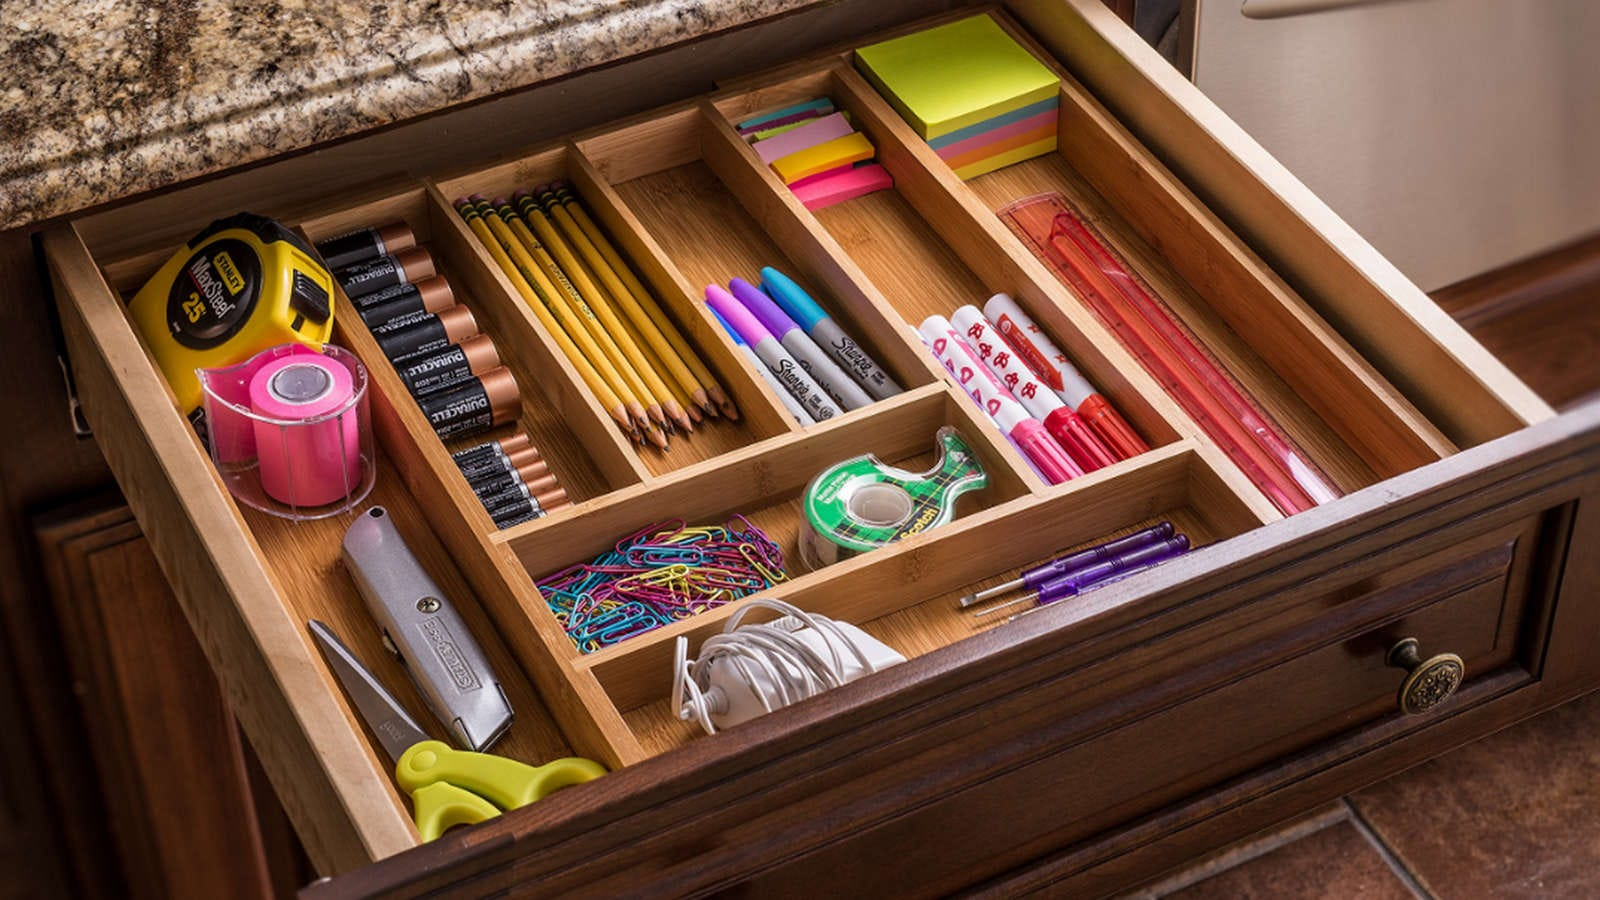 Spend Less Time Looking For Stuff And More Time On The Important Things By  Upgrading Your Drawers, Big And Small, With These Great Organizers.